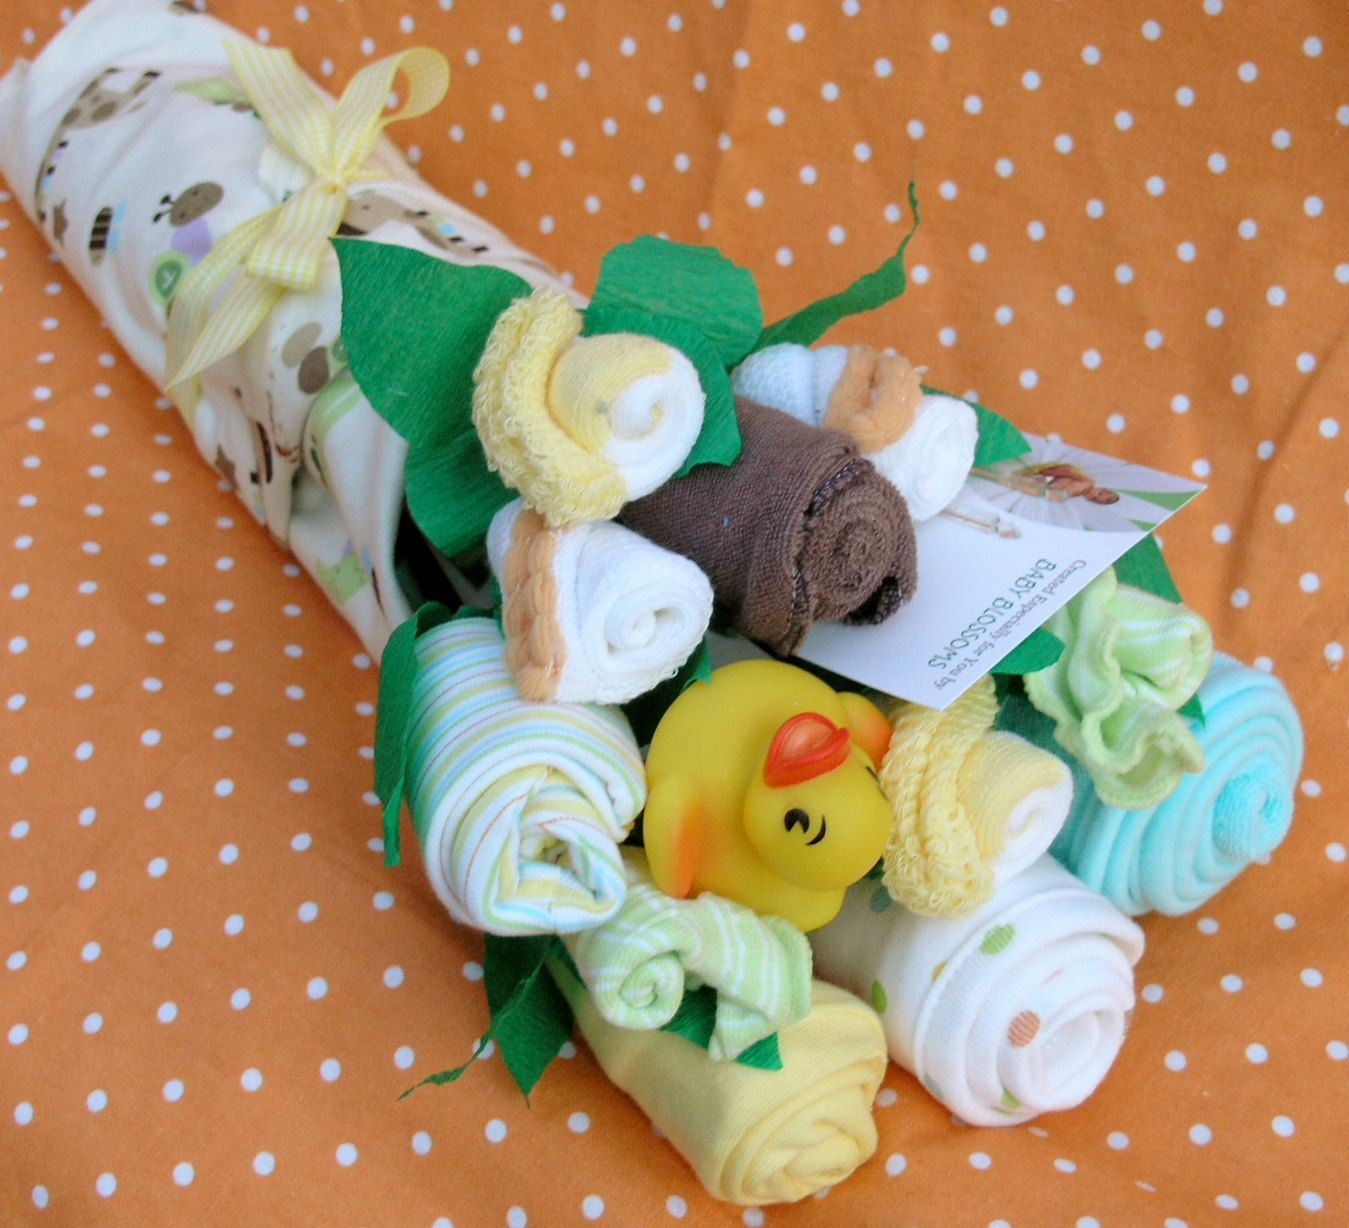 High Quality Gender Neutral Baby Shower Gift Bouquet By Babyblossomco On Etsy, $35.00